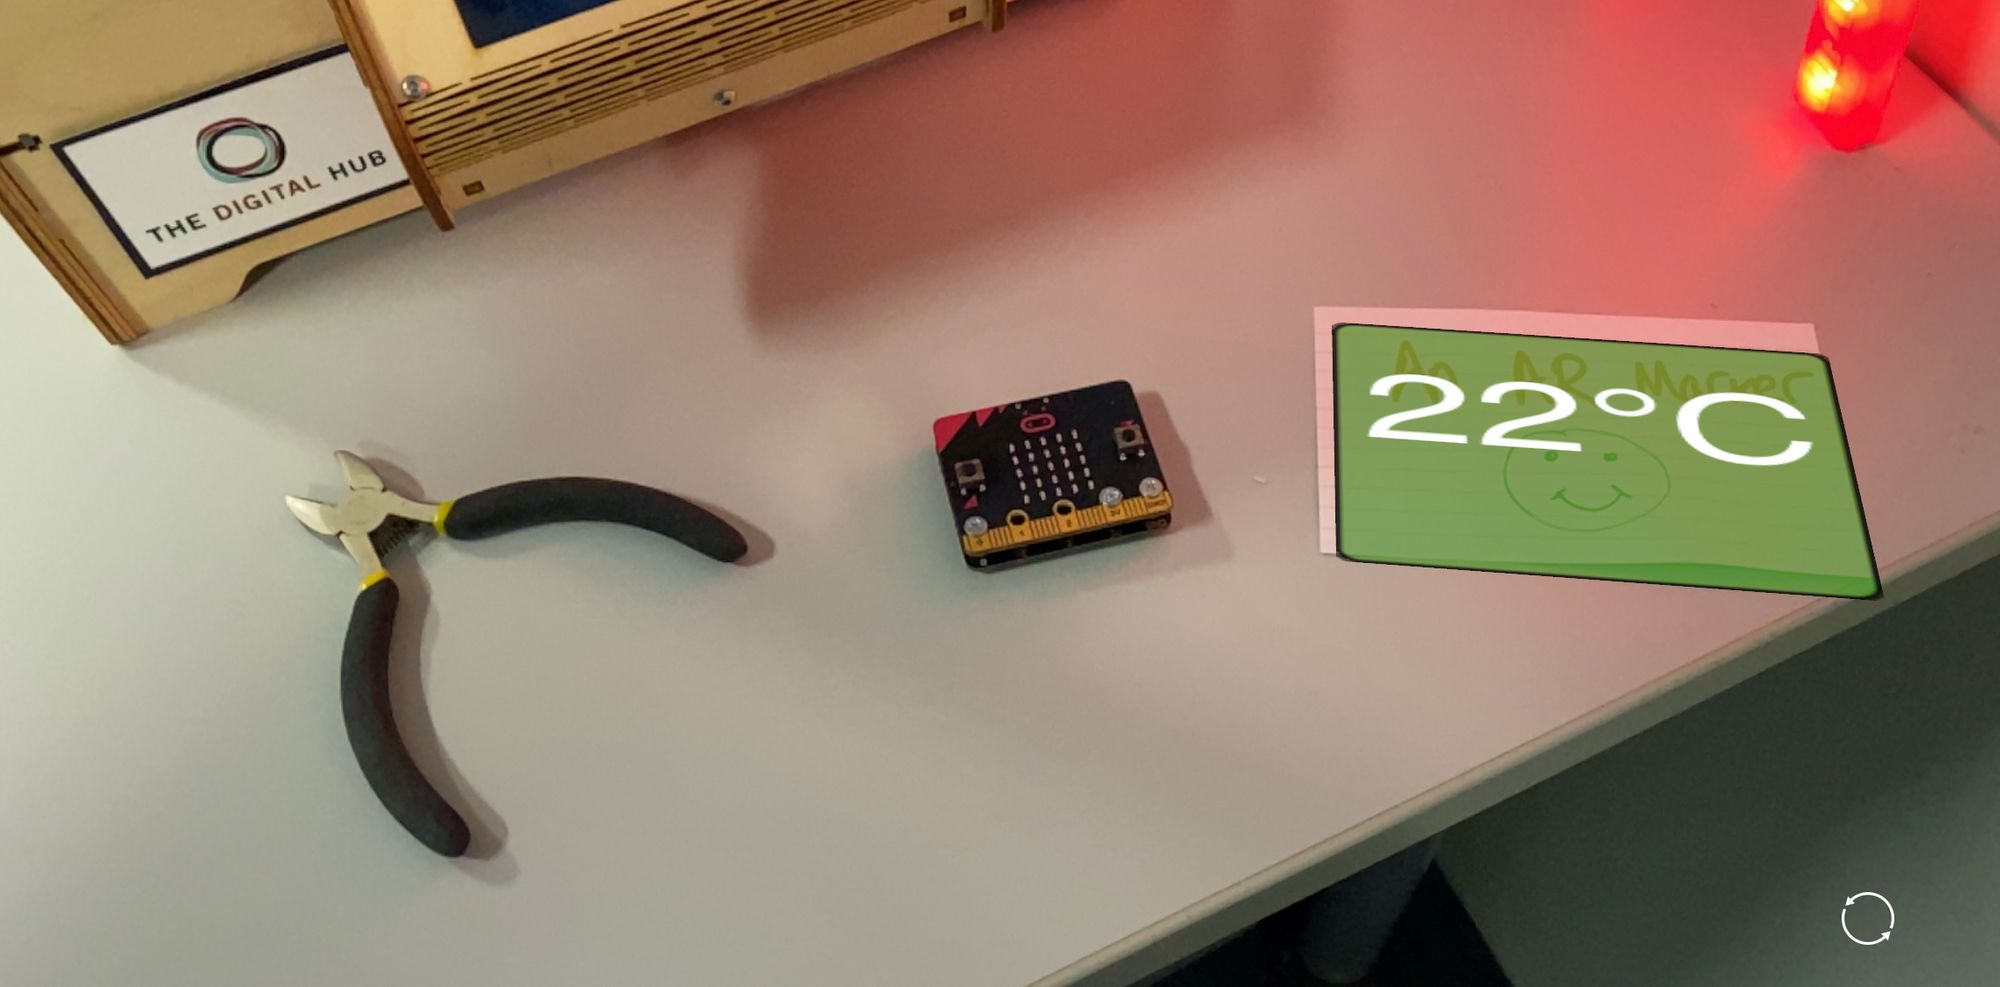 image from Demo: Augmented Reality view of live micro:bit sensor data